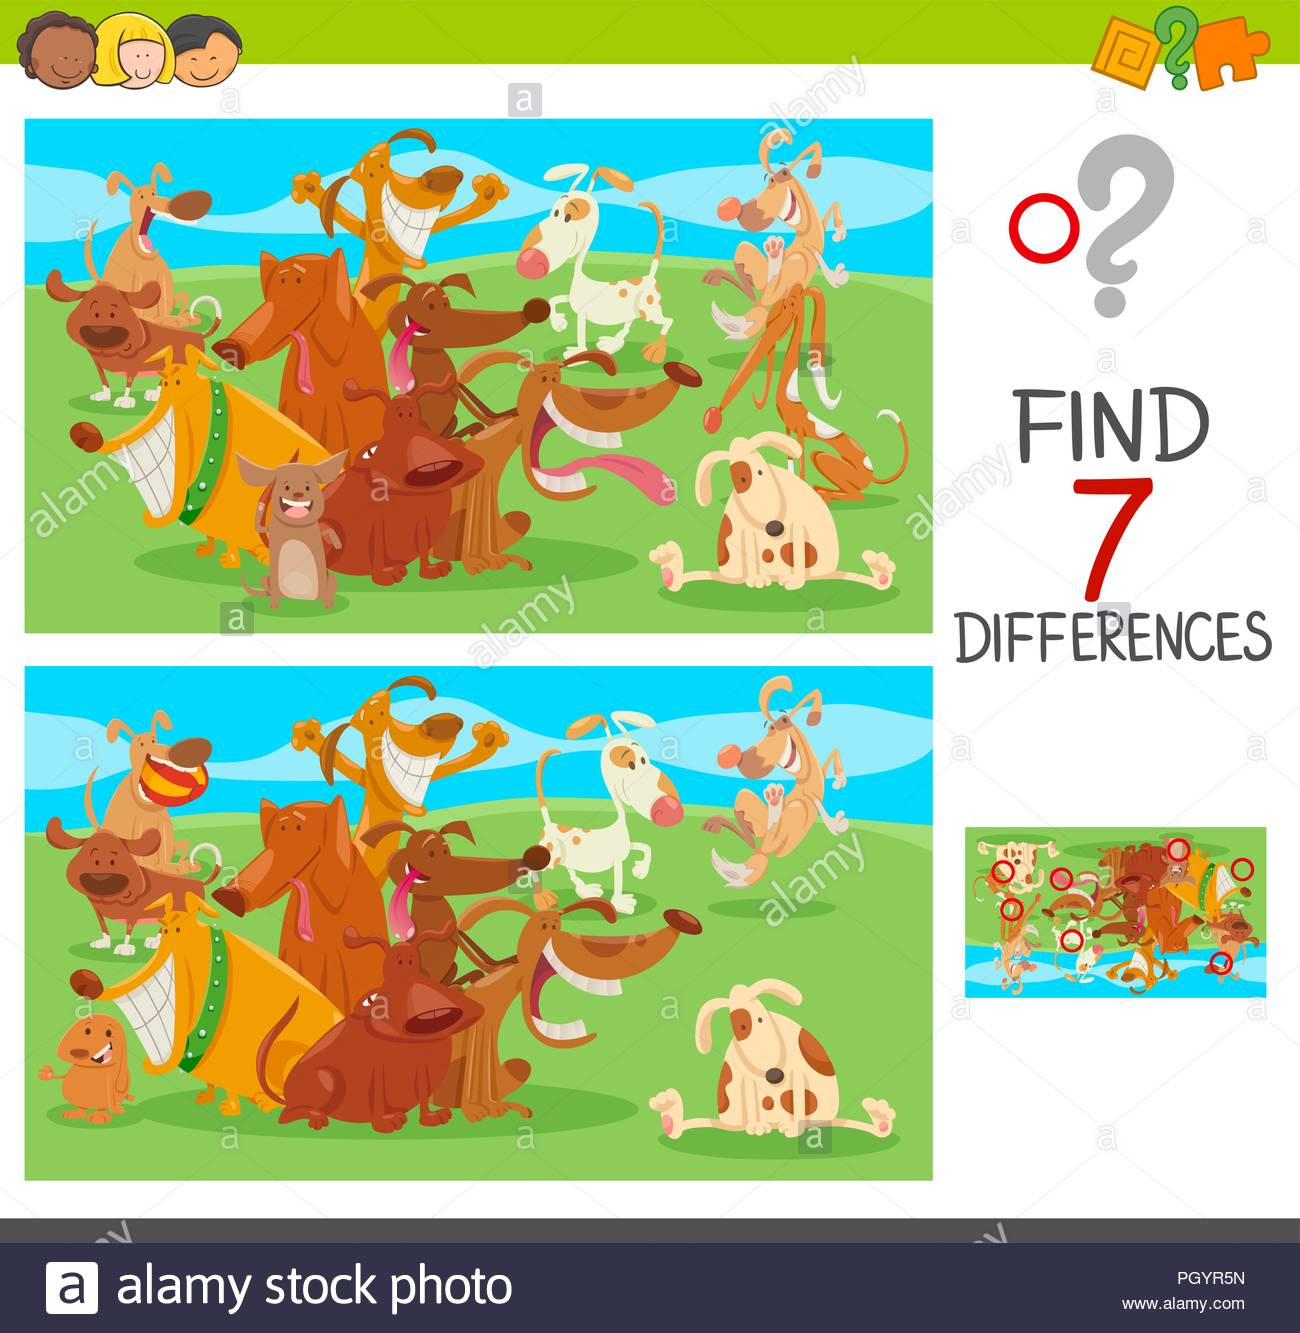 Cartoon Illustration Of Finding Seven Differences Between avec Chercher Les Differences